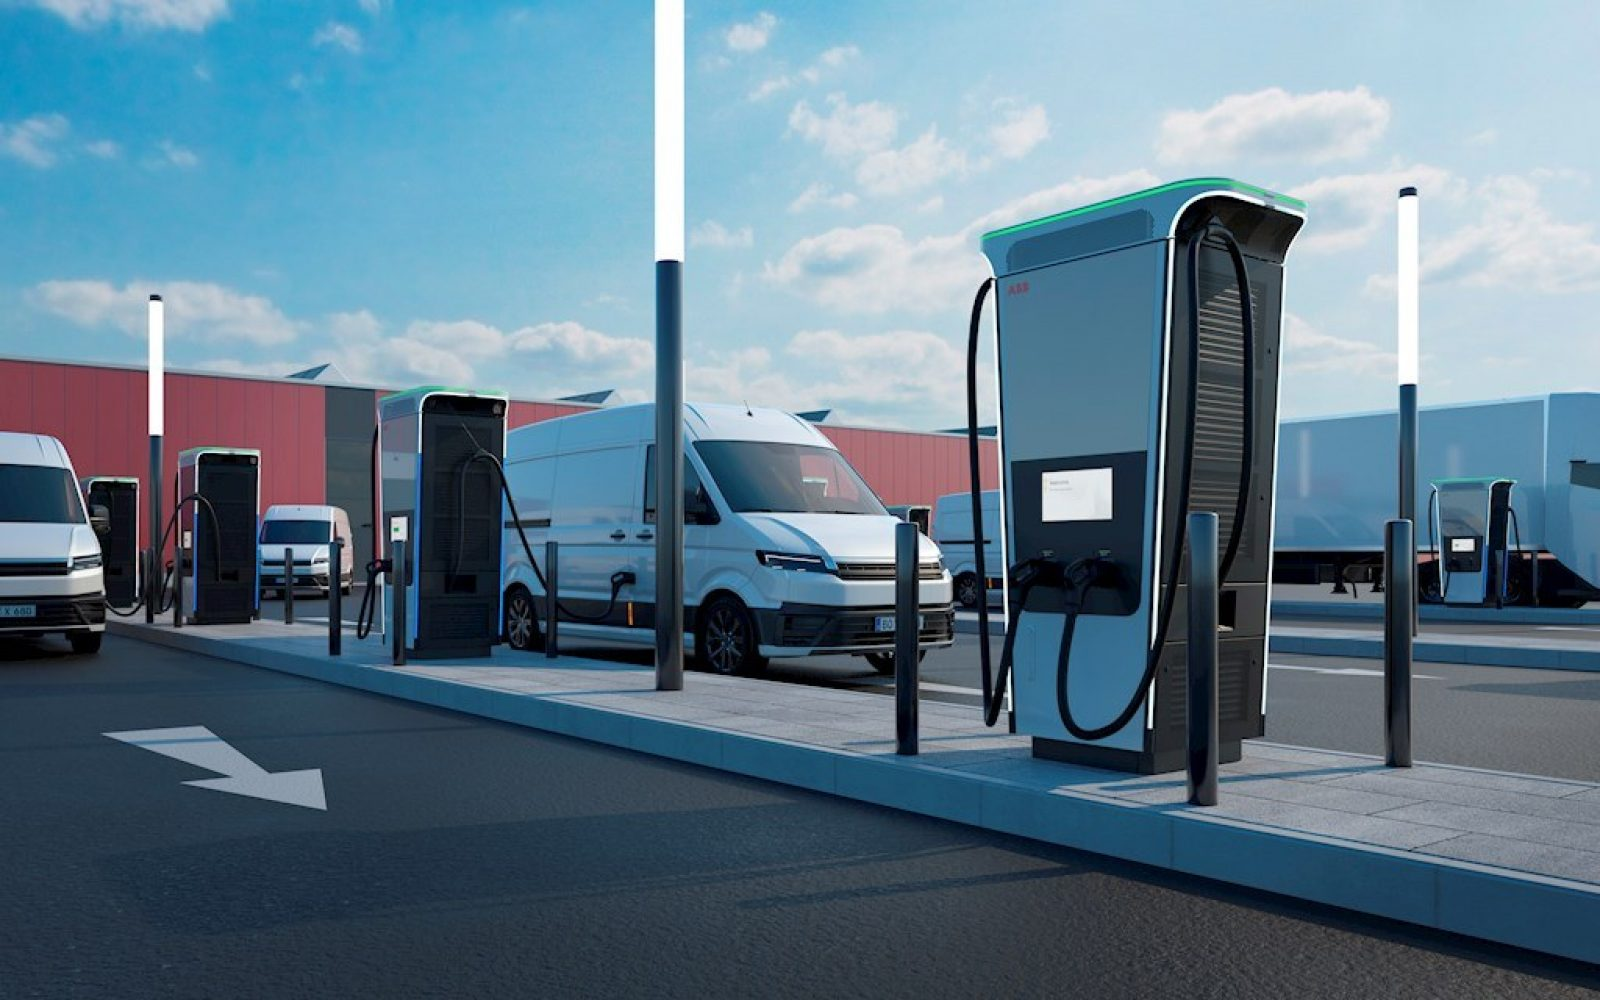 The Terra 360 charger allows up to four electric vehicles to charge at once. Image: ABB.